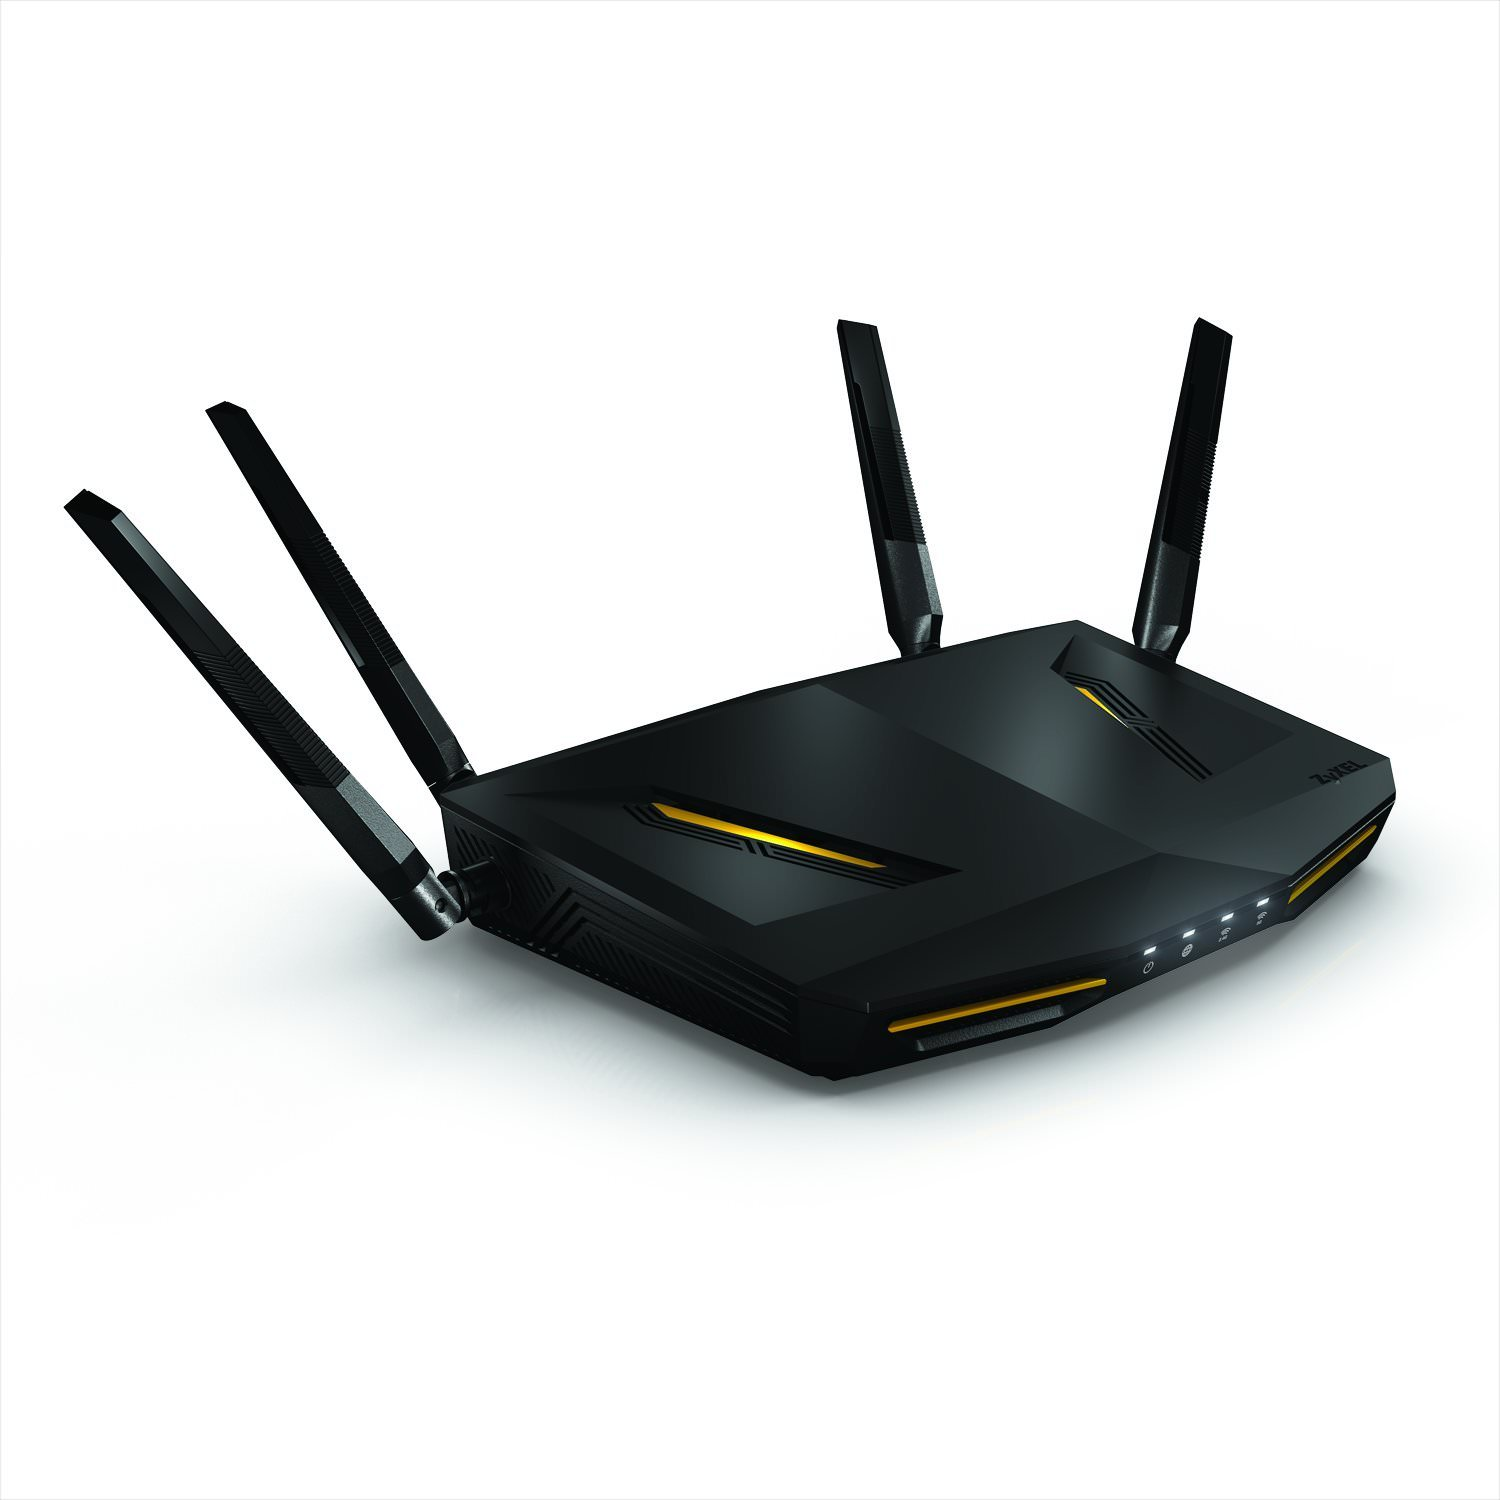 ZyXEL Armor Z2 Wireless-AC2600 Dual Band Gigabit Router by ZyXEL